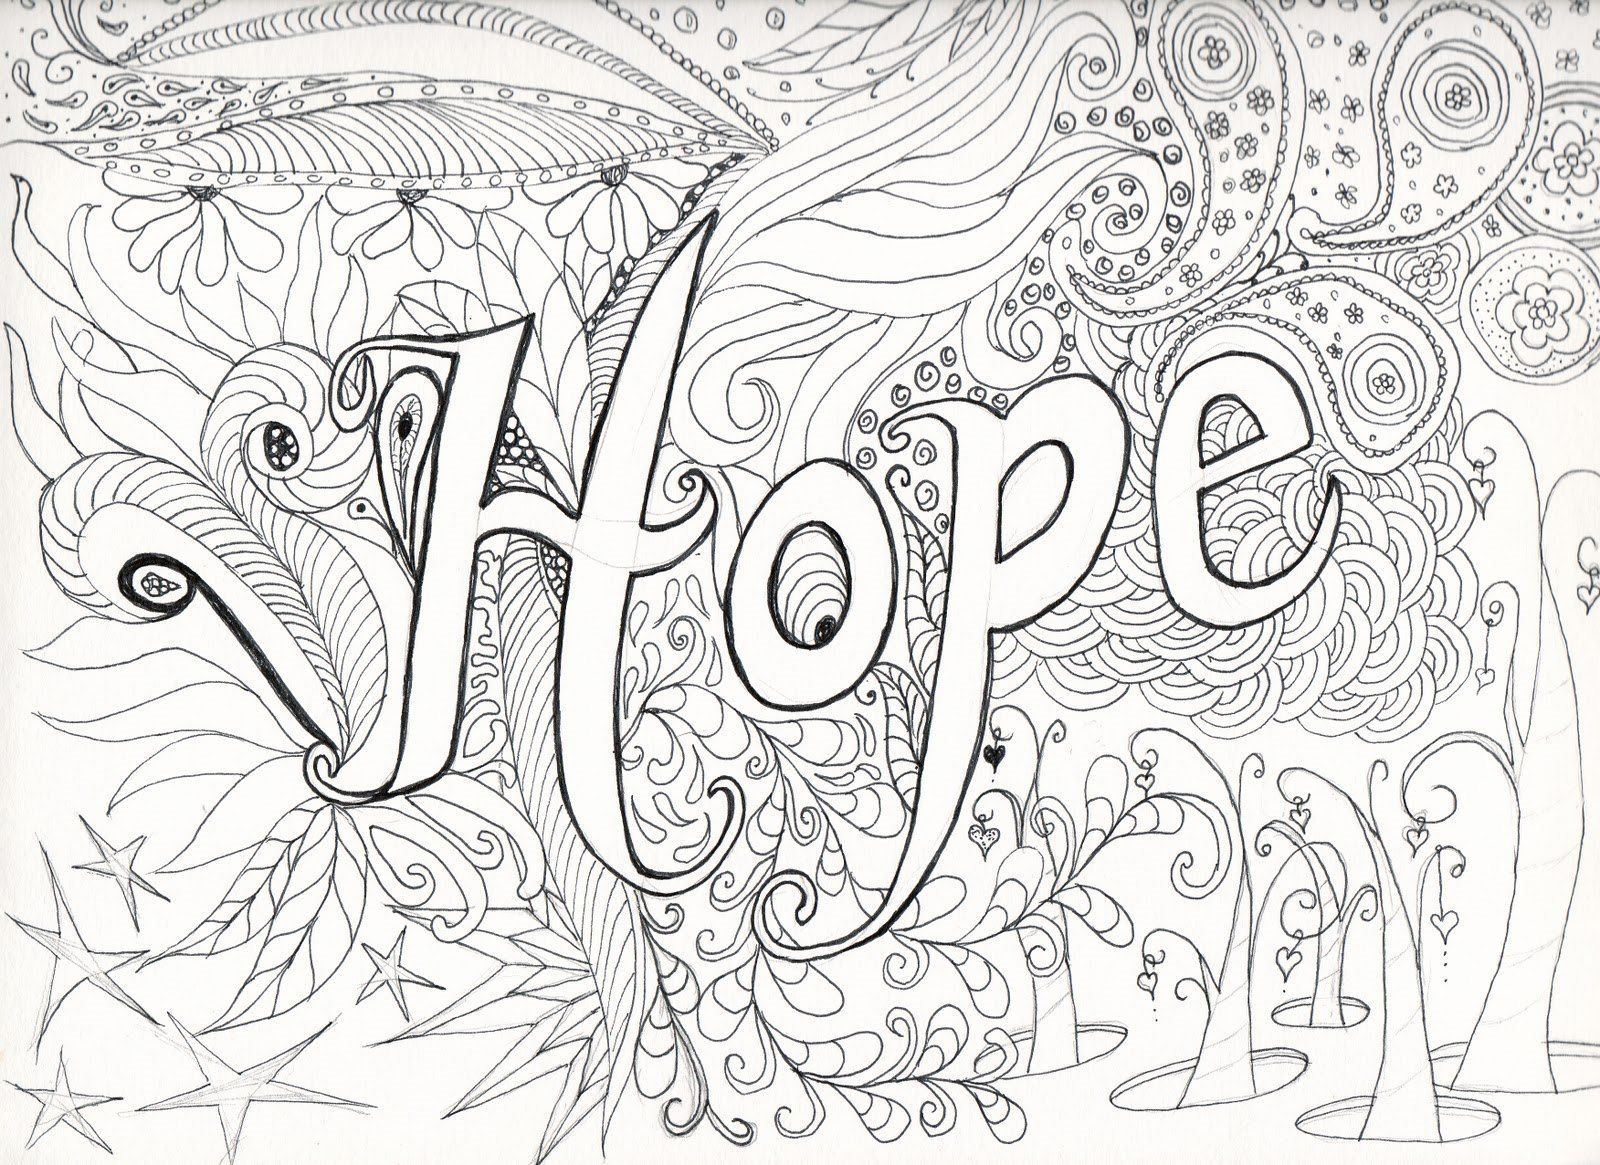 Difficult Color By Number Coloring Pages Best Coloring Page Site Detailed Coloring Pages Abstract Coloring Pages Mandala Coloring Pages [ 1165 x 1600 Pixel ]